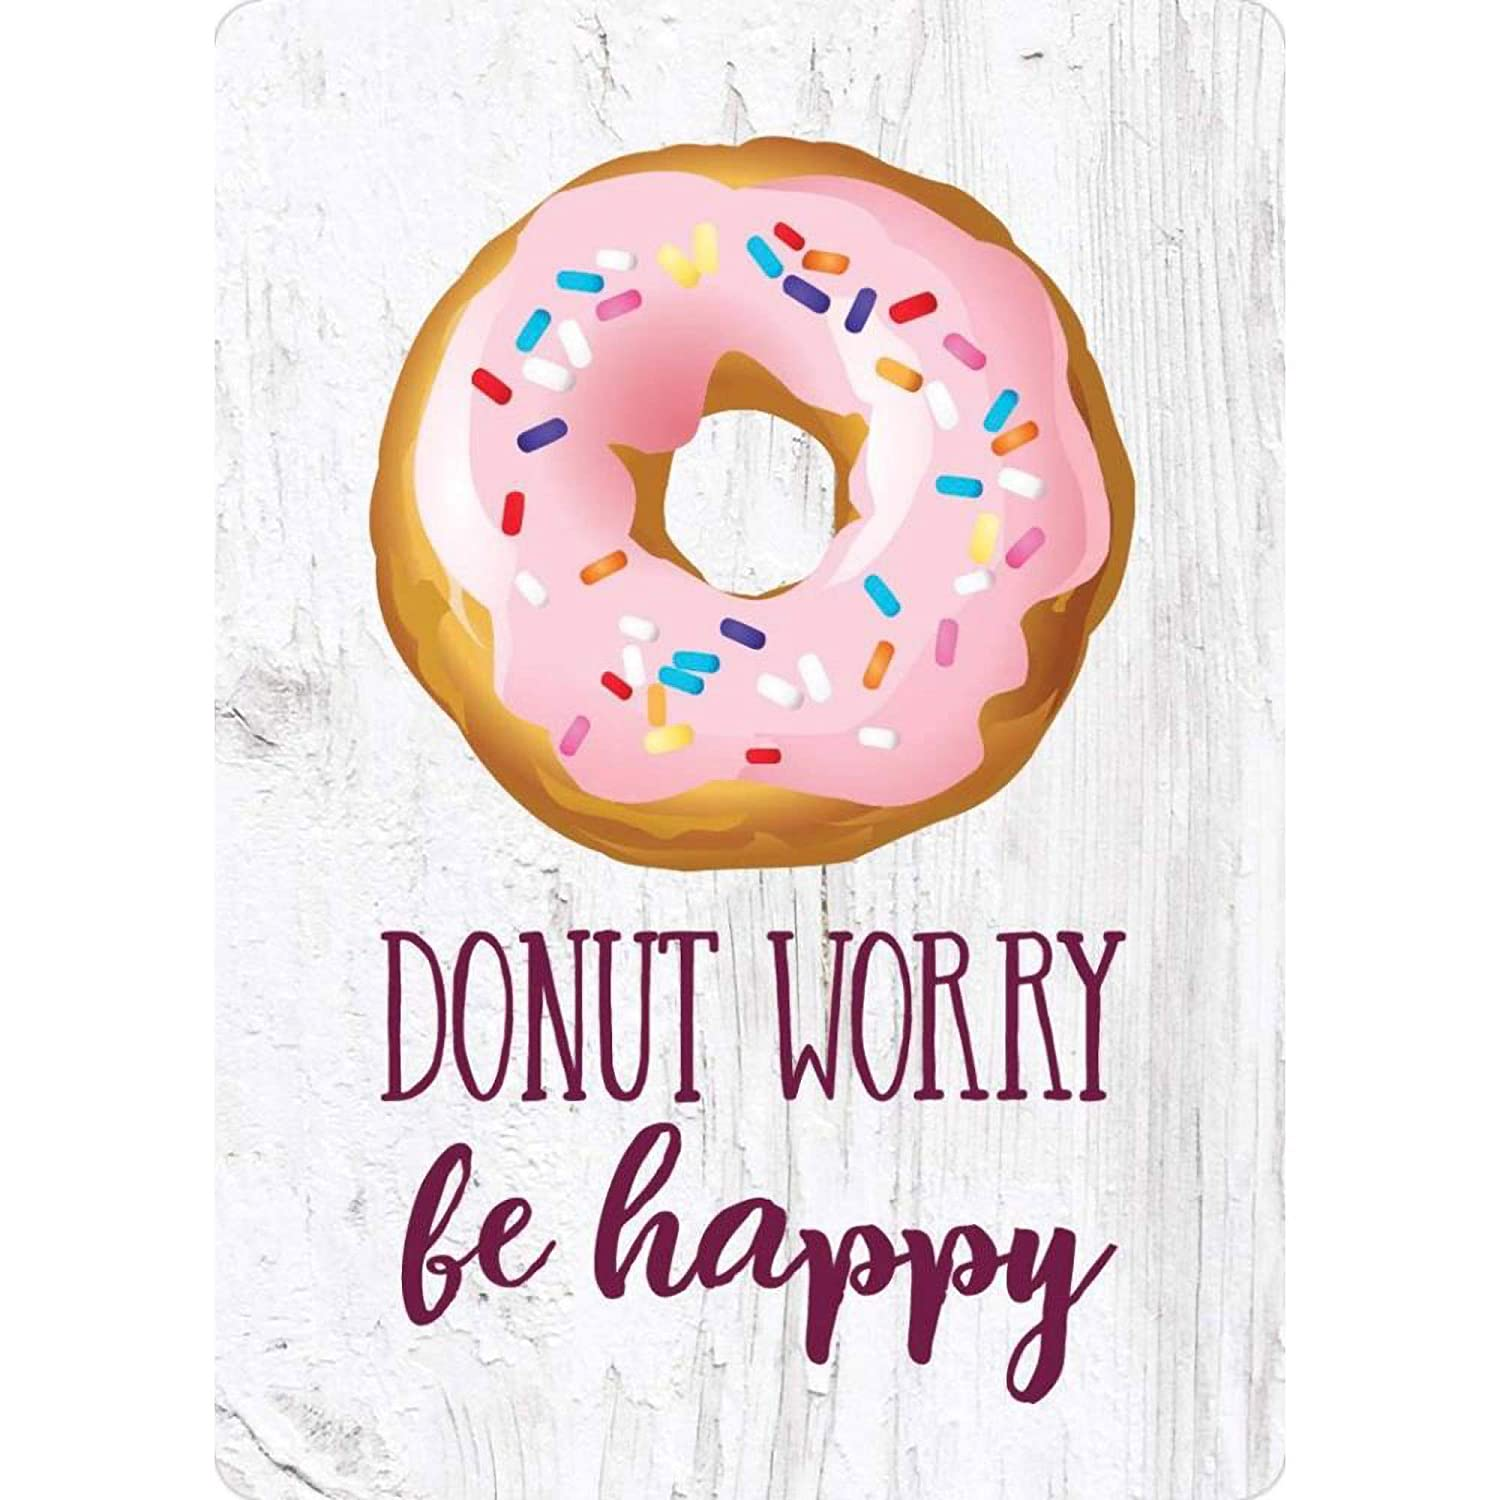 P. Graham Dunn Donut Worry Be Happy Whitewashed Pink Sprinkles 4 x 3 Wood Refrigerator Magnet